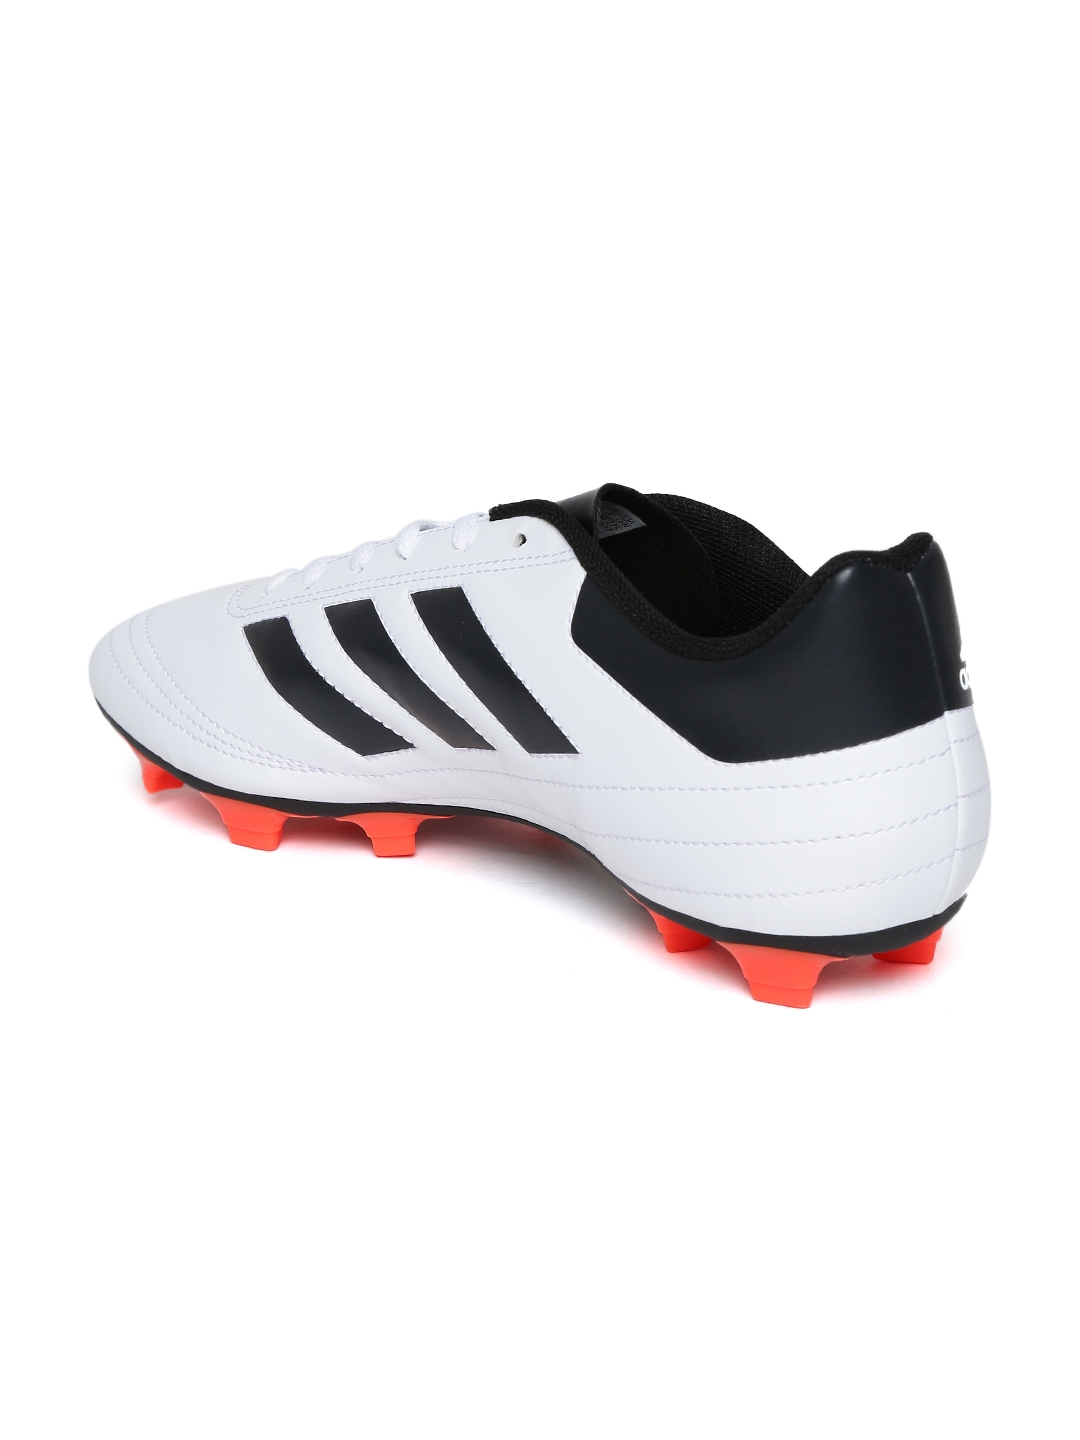 a13099bec136 Buy ADIDAS Men White Goletto VI FG Football Shoes - Sports Shoes for ...